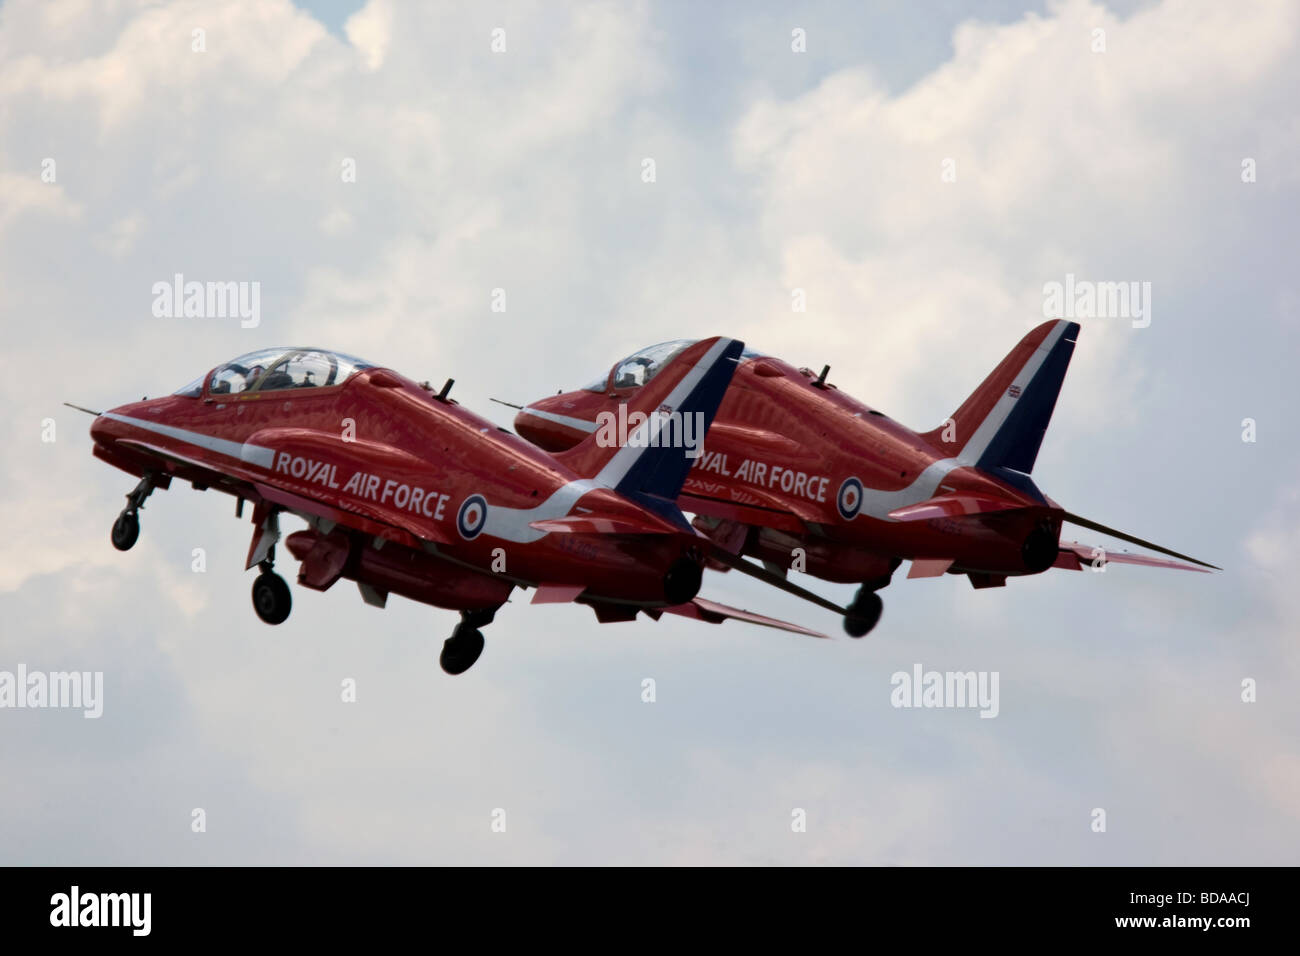 Two Raf Red Arrows Bae Systems Hawk Jets Taking Off In Formation At